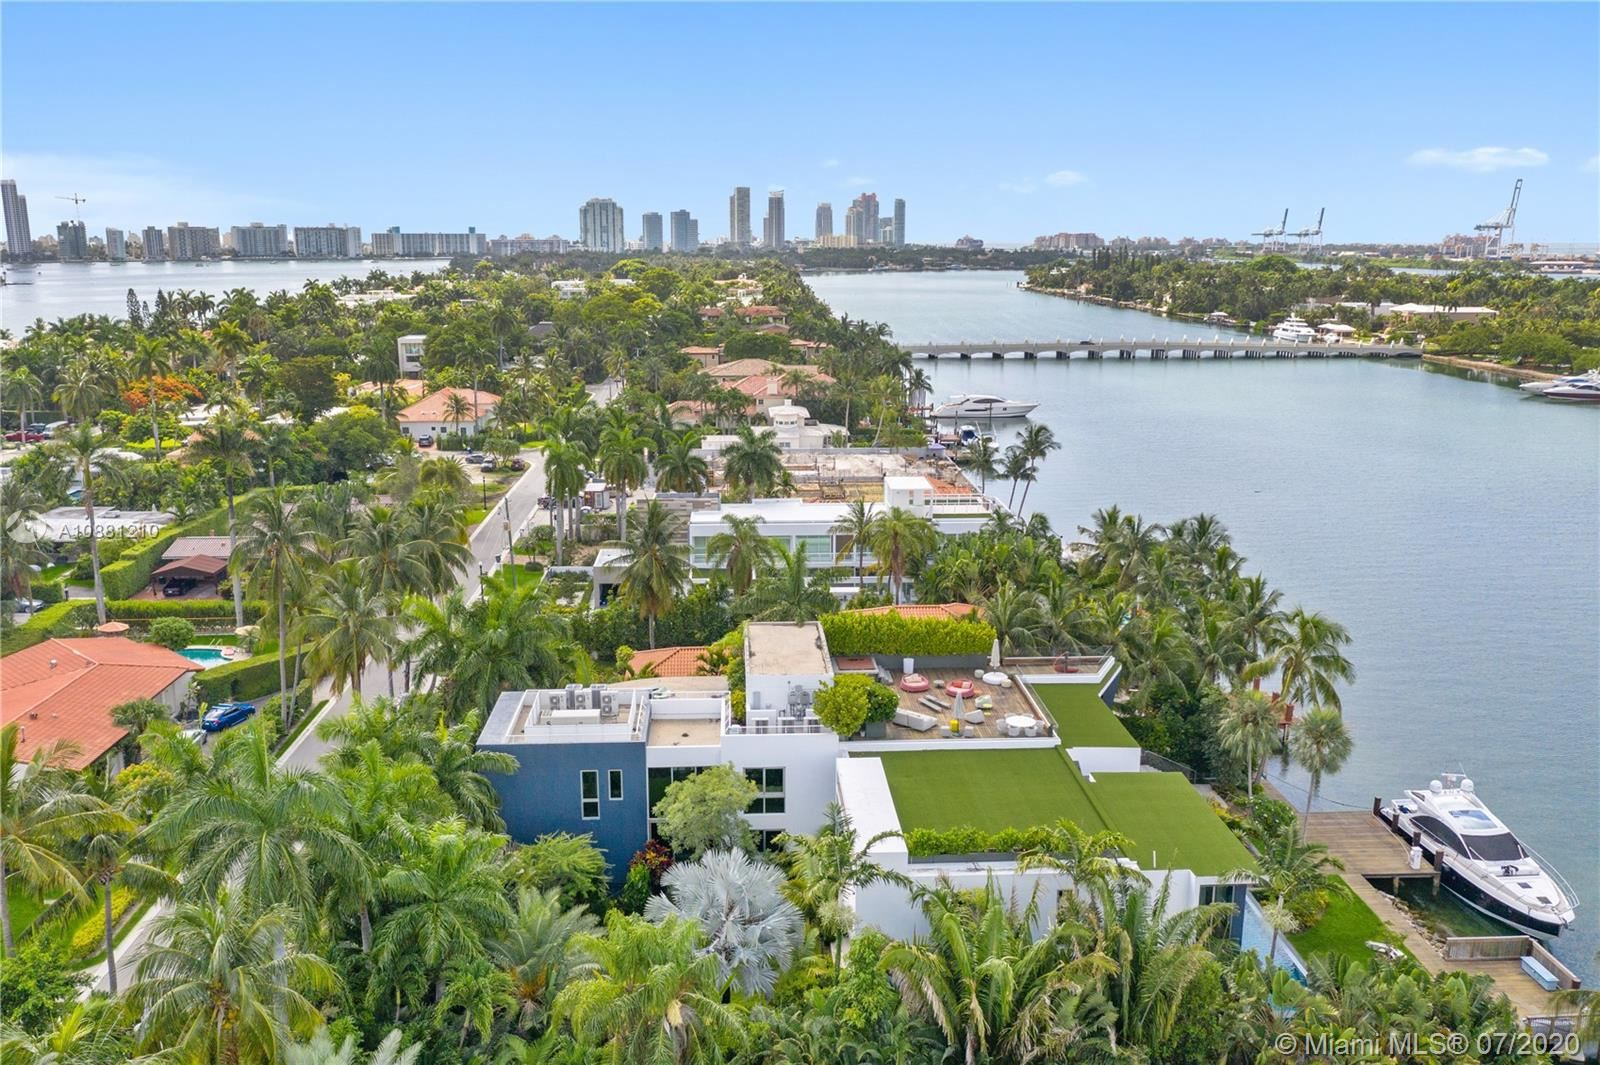 Photo 40 of Listing MLS a10881210 in 370 S Hibiscus Dr Miami Beach FL 33139